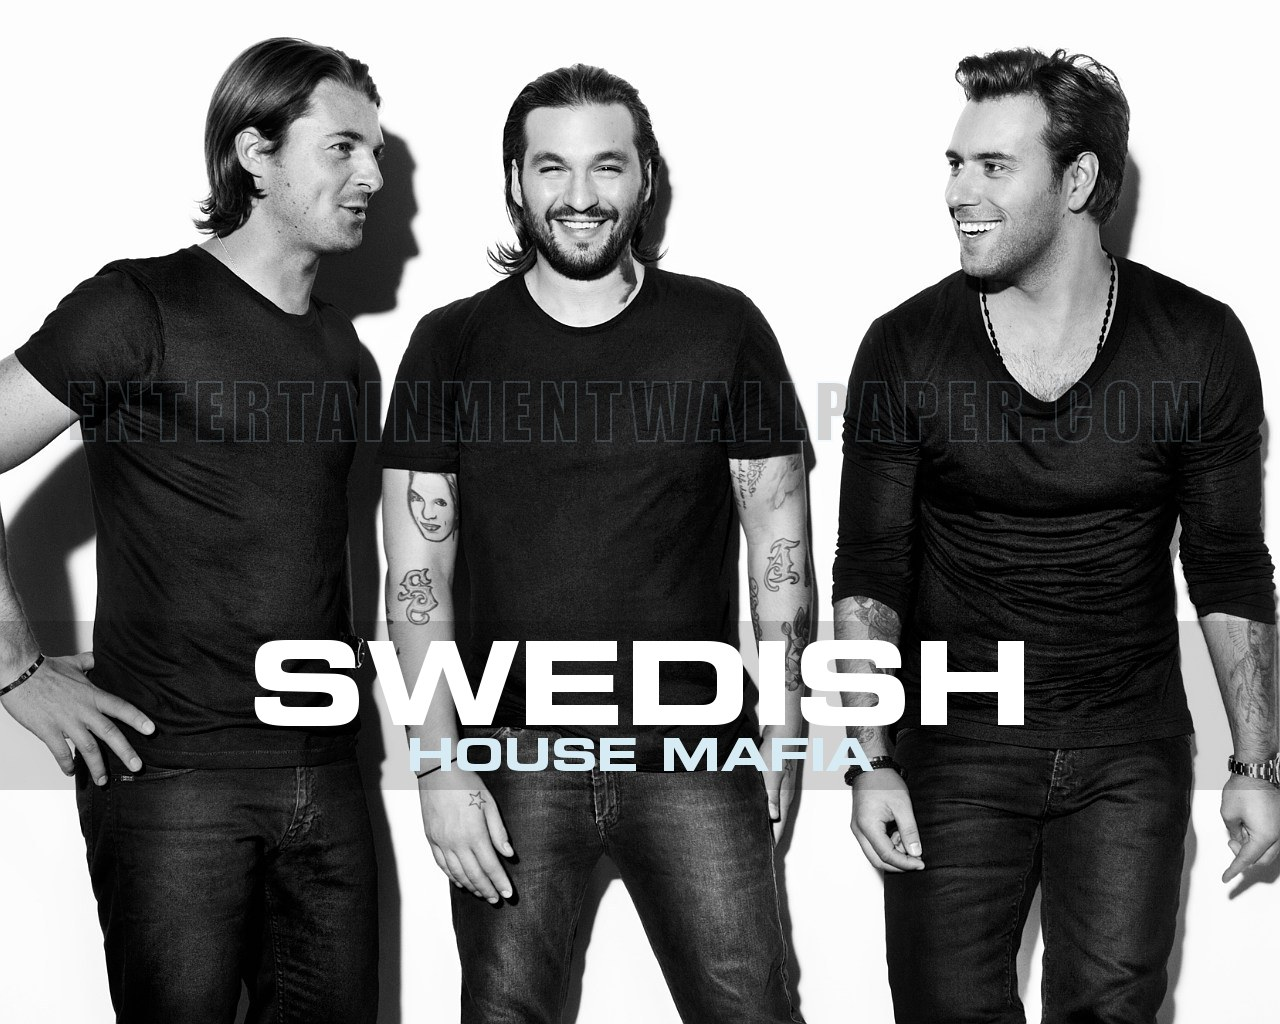 Swedish House Mafia Wallpaper - Original size, download now.